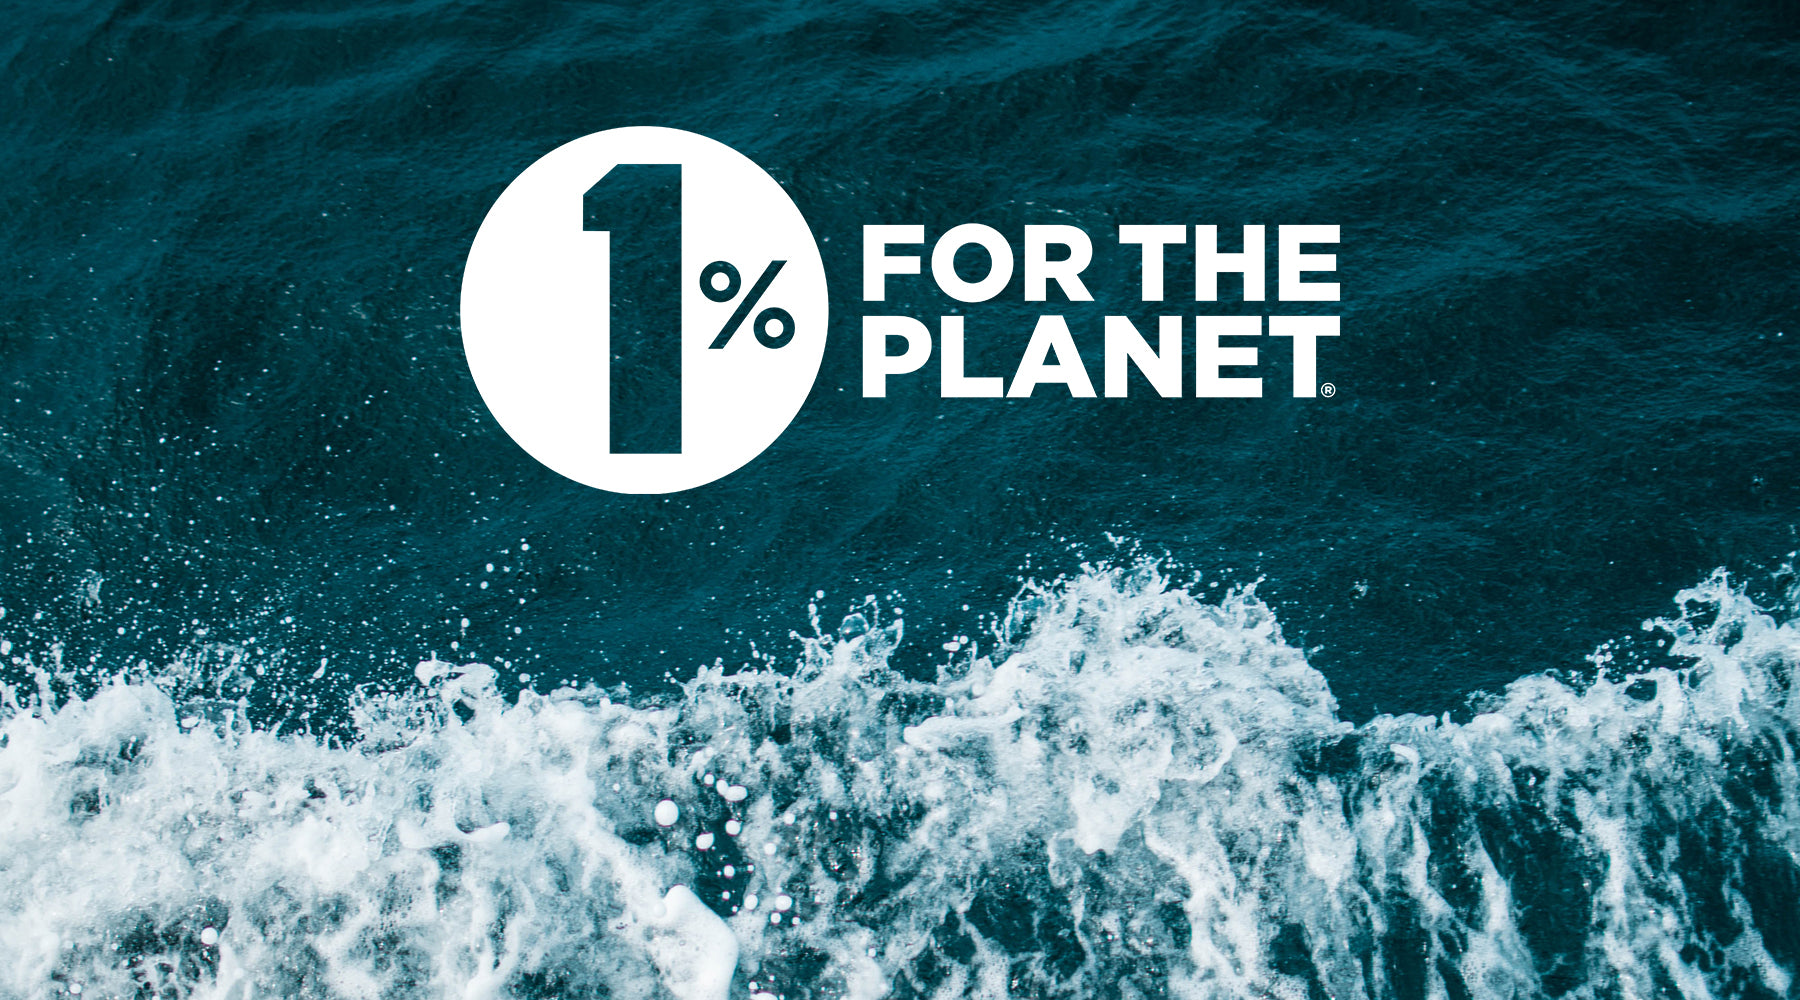 Nummy's Partnership with 1% for the Planet